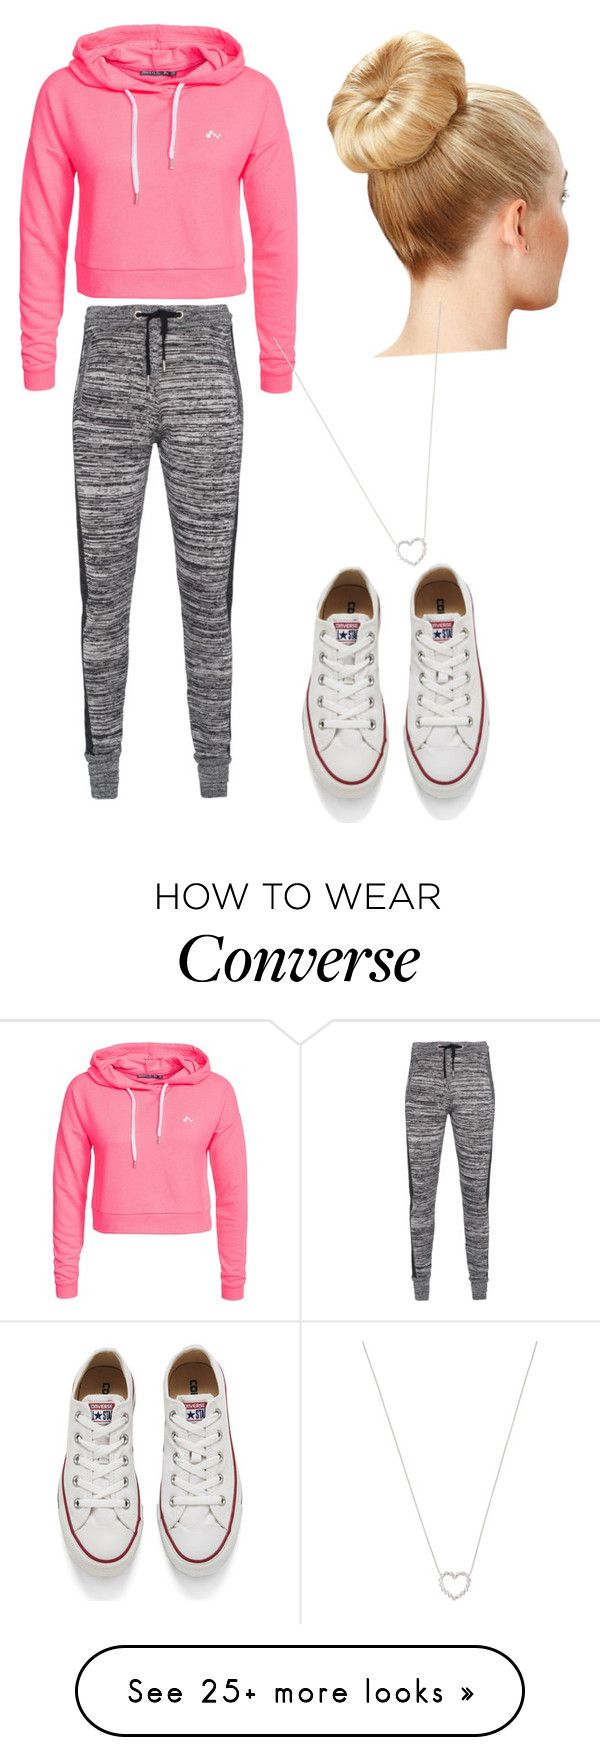 """""""600+ followers!"""" by slytheringirlriddle on Polyvore featuring Zoe Karssen, Only Play, Converse, Tiffany & Co., women's clothing, women, female, woman, misses and juniors"""